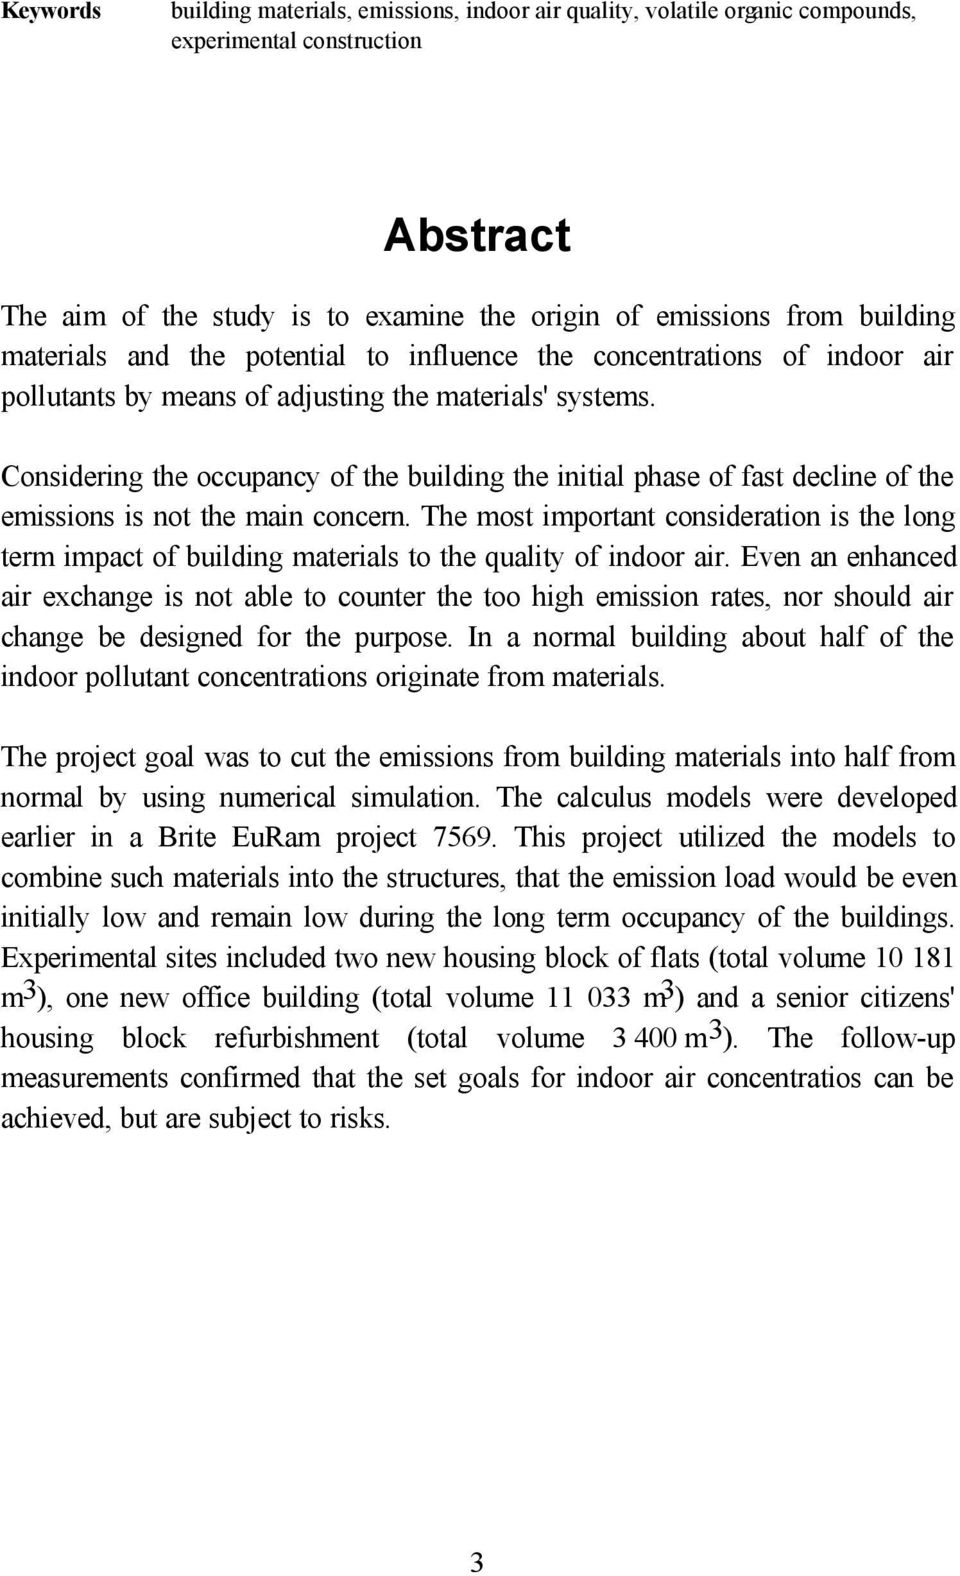 Considering the occupancy of the building the initial phase of fast decline of the emissions is not the main concern.